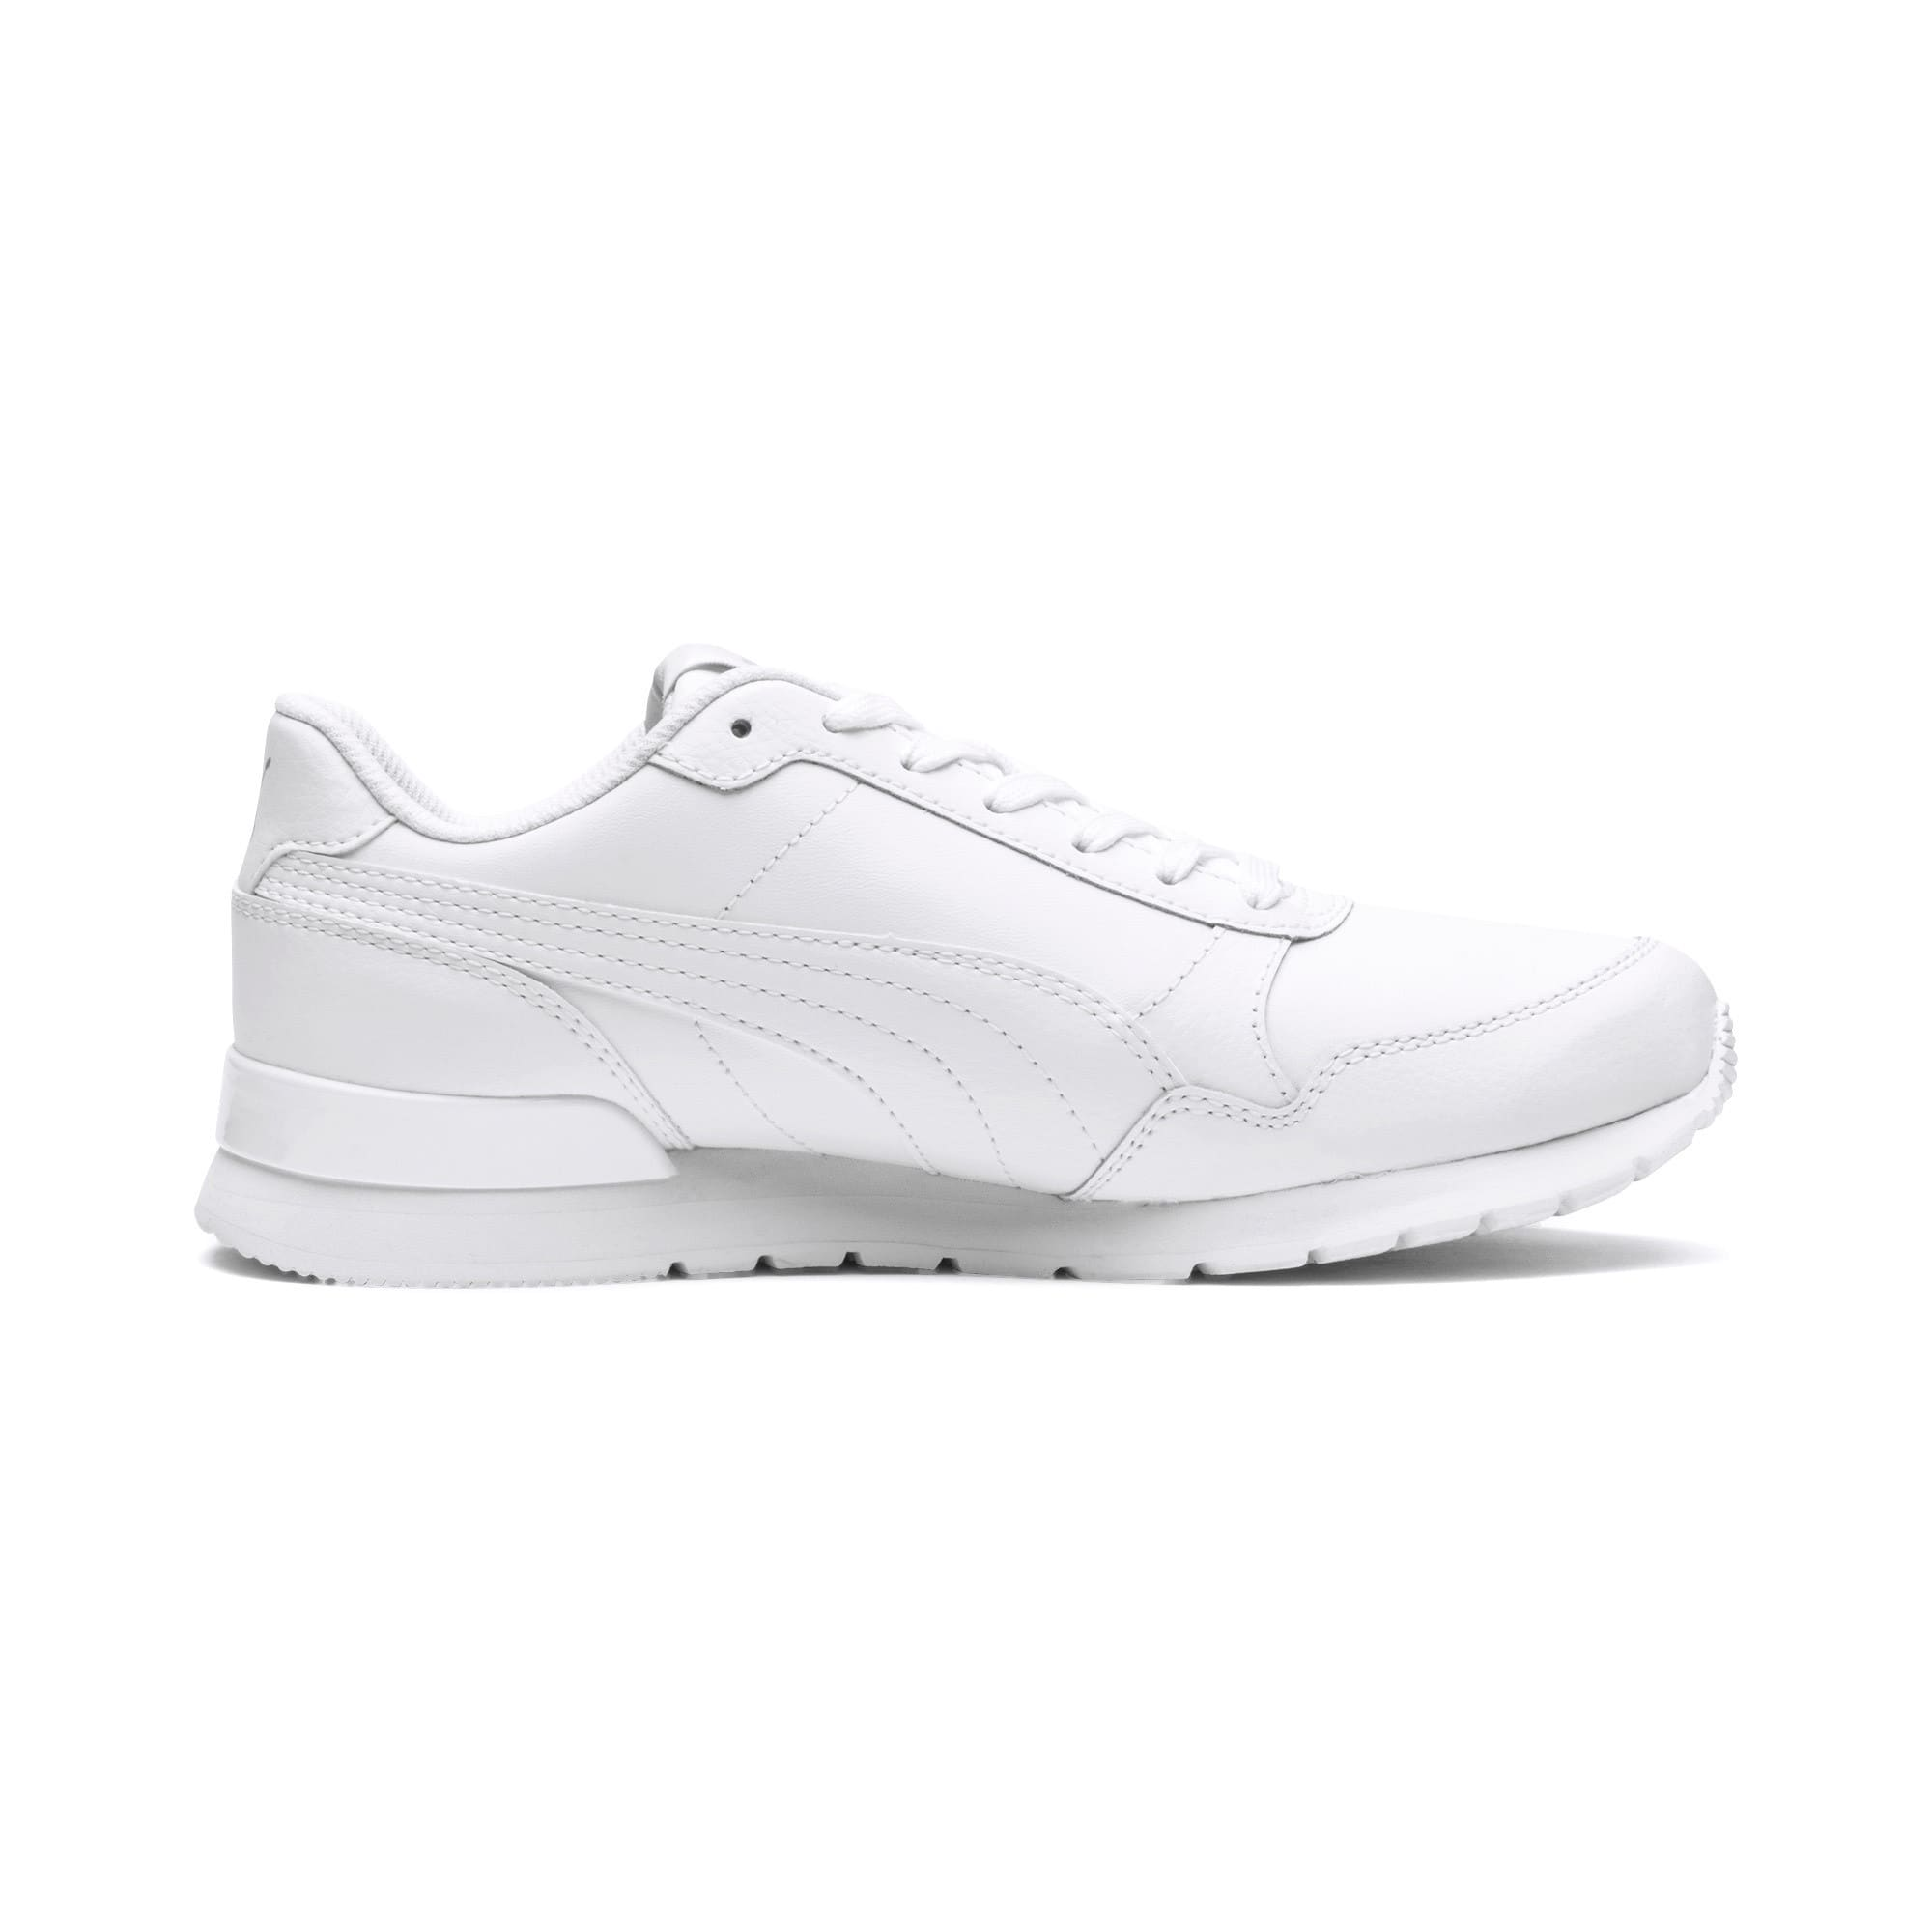 Thumbnail 5 of ST Runner v2 Leather Sneakers JR, Puma White-Gray Violet, medium